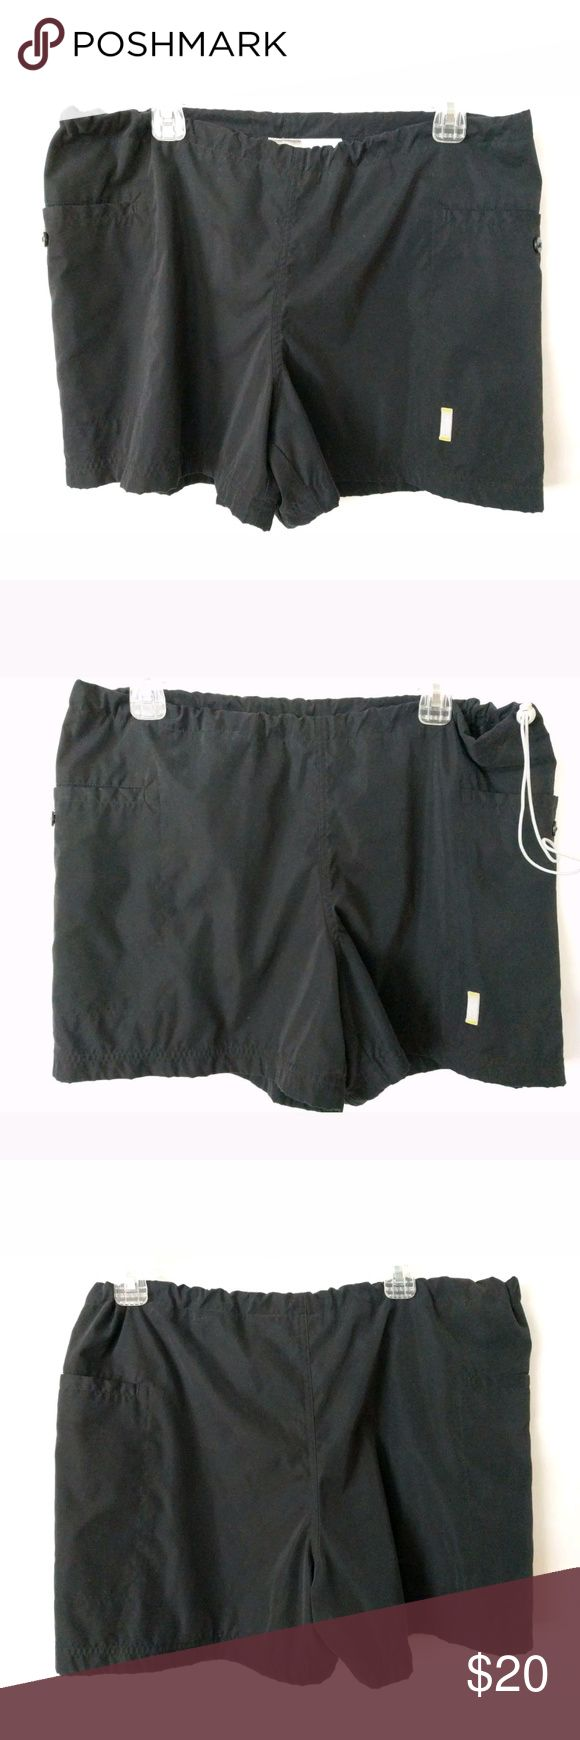 Nike Swimming Shorts Large Size 12-14 Black Nike Women Swimming Shorts Size Large 12-14 Adjustable Waist Pull Strings Pockets Mesh Lining Black Nike Shorts